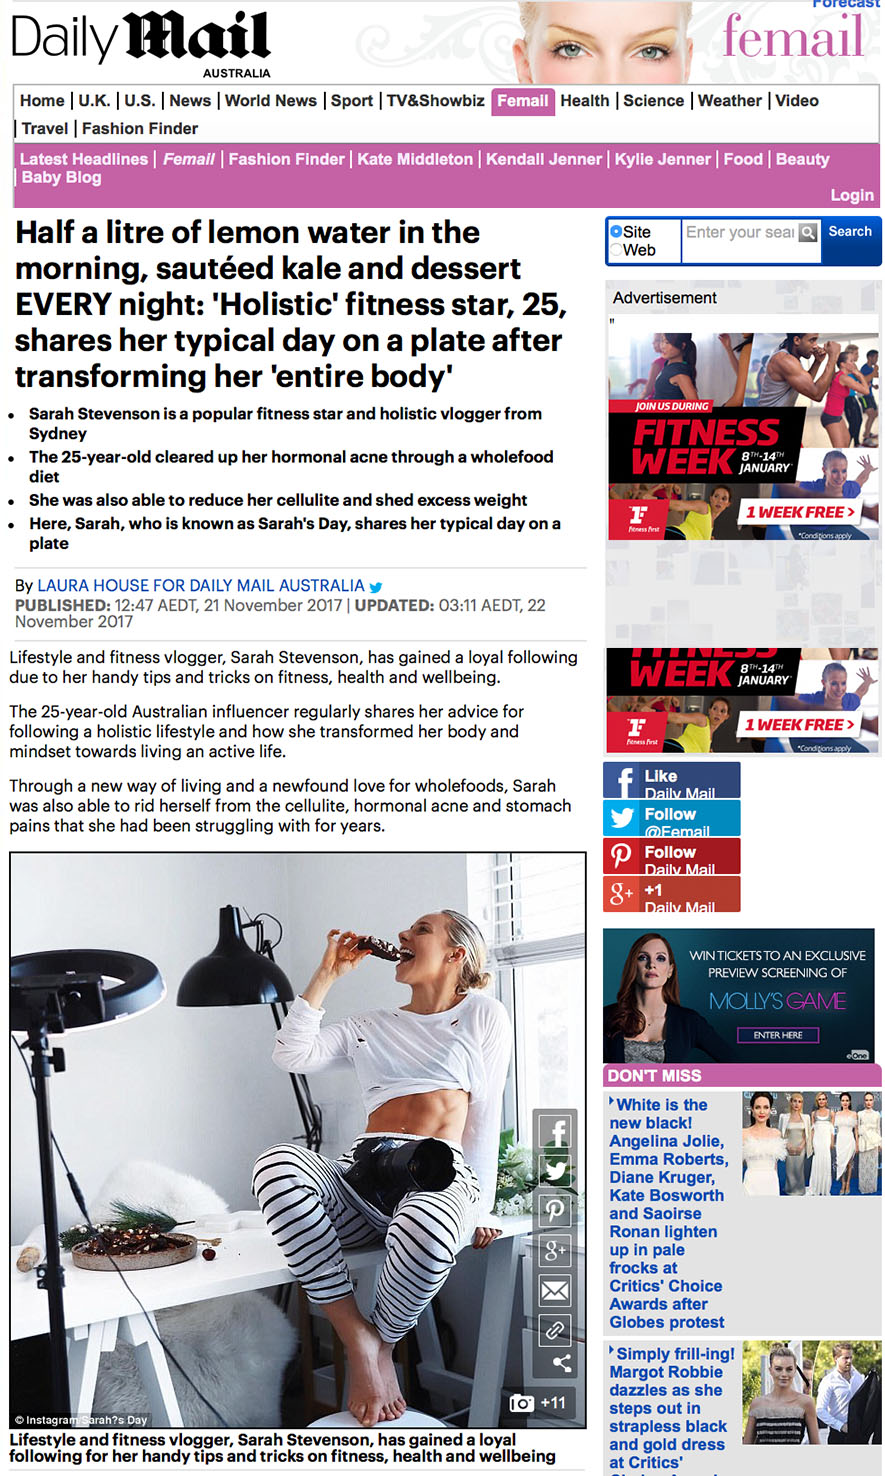 Daily Mail - Sarah's Day shares her typical day on a plate.